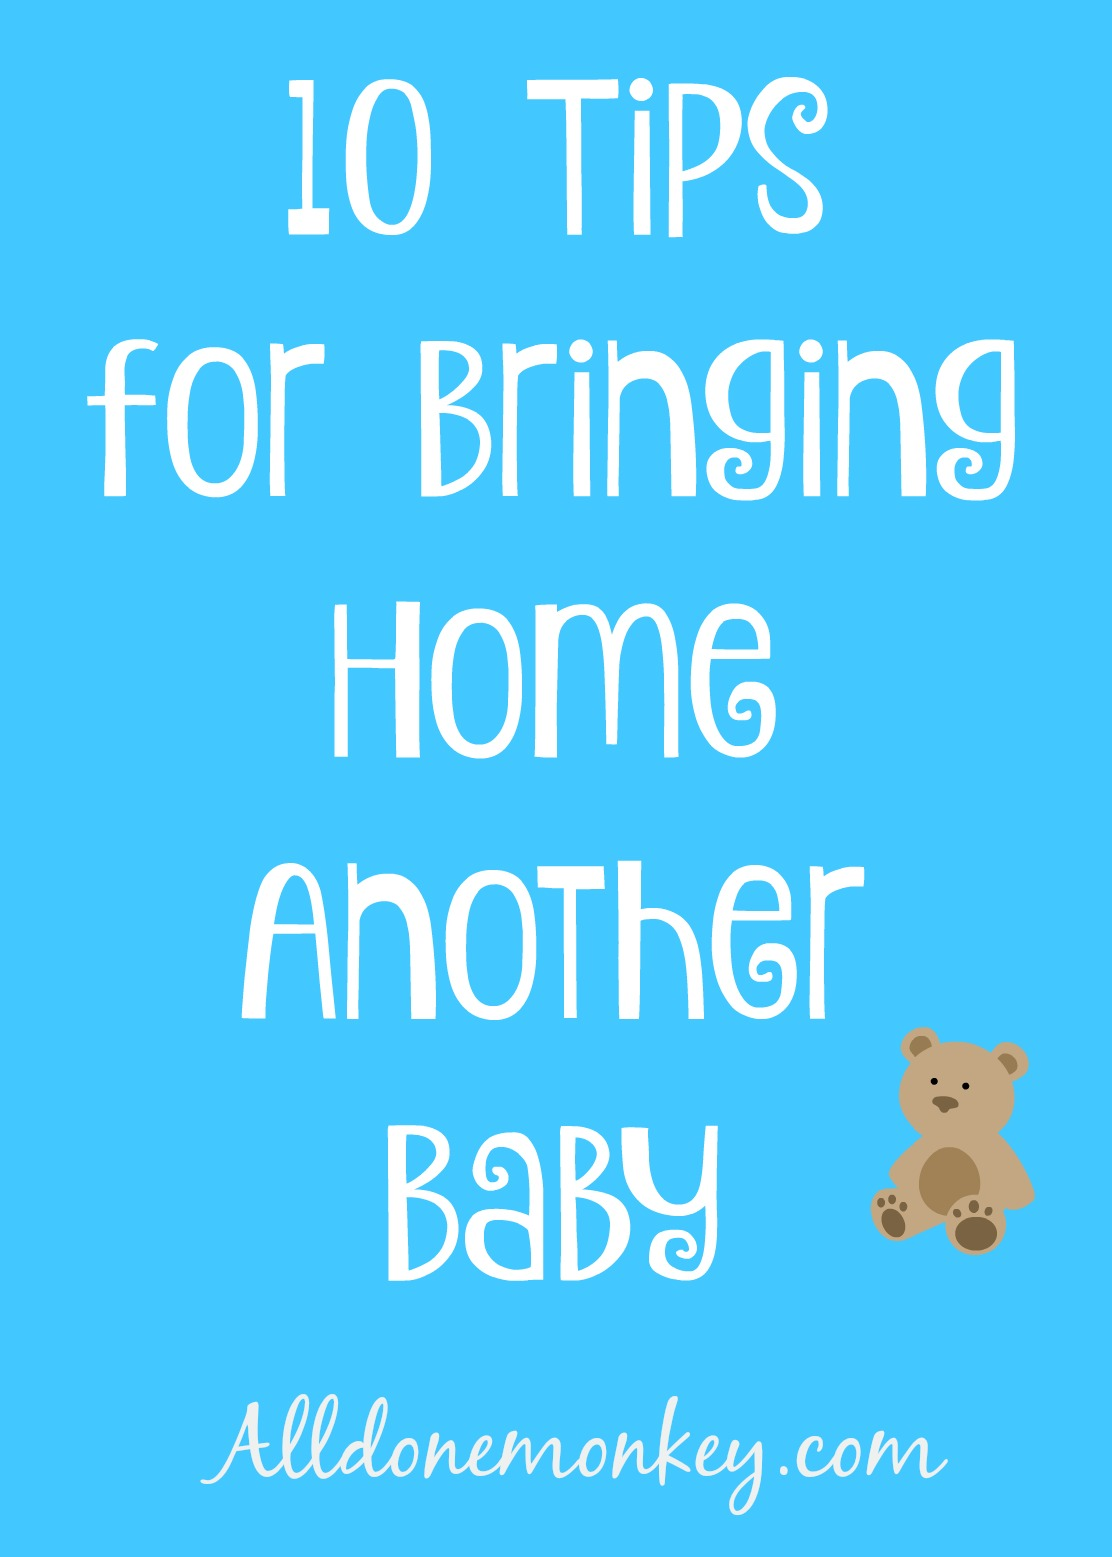 10 Tips for Bringing Home Another Baby | Alldonemonkey.com